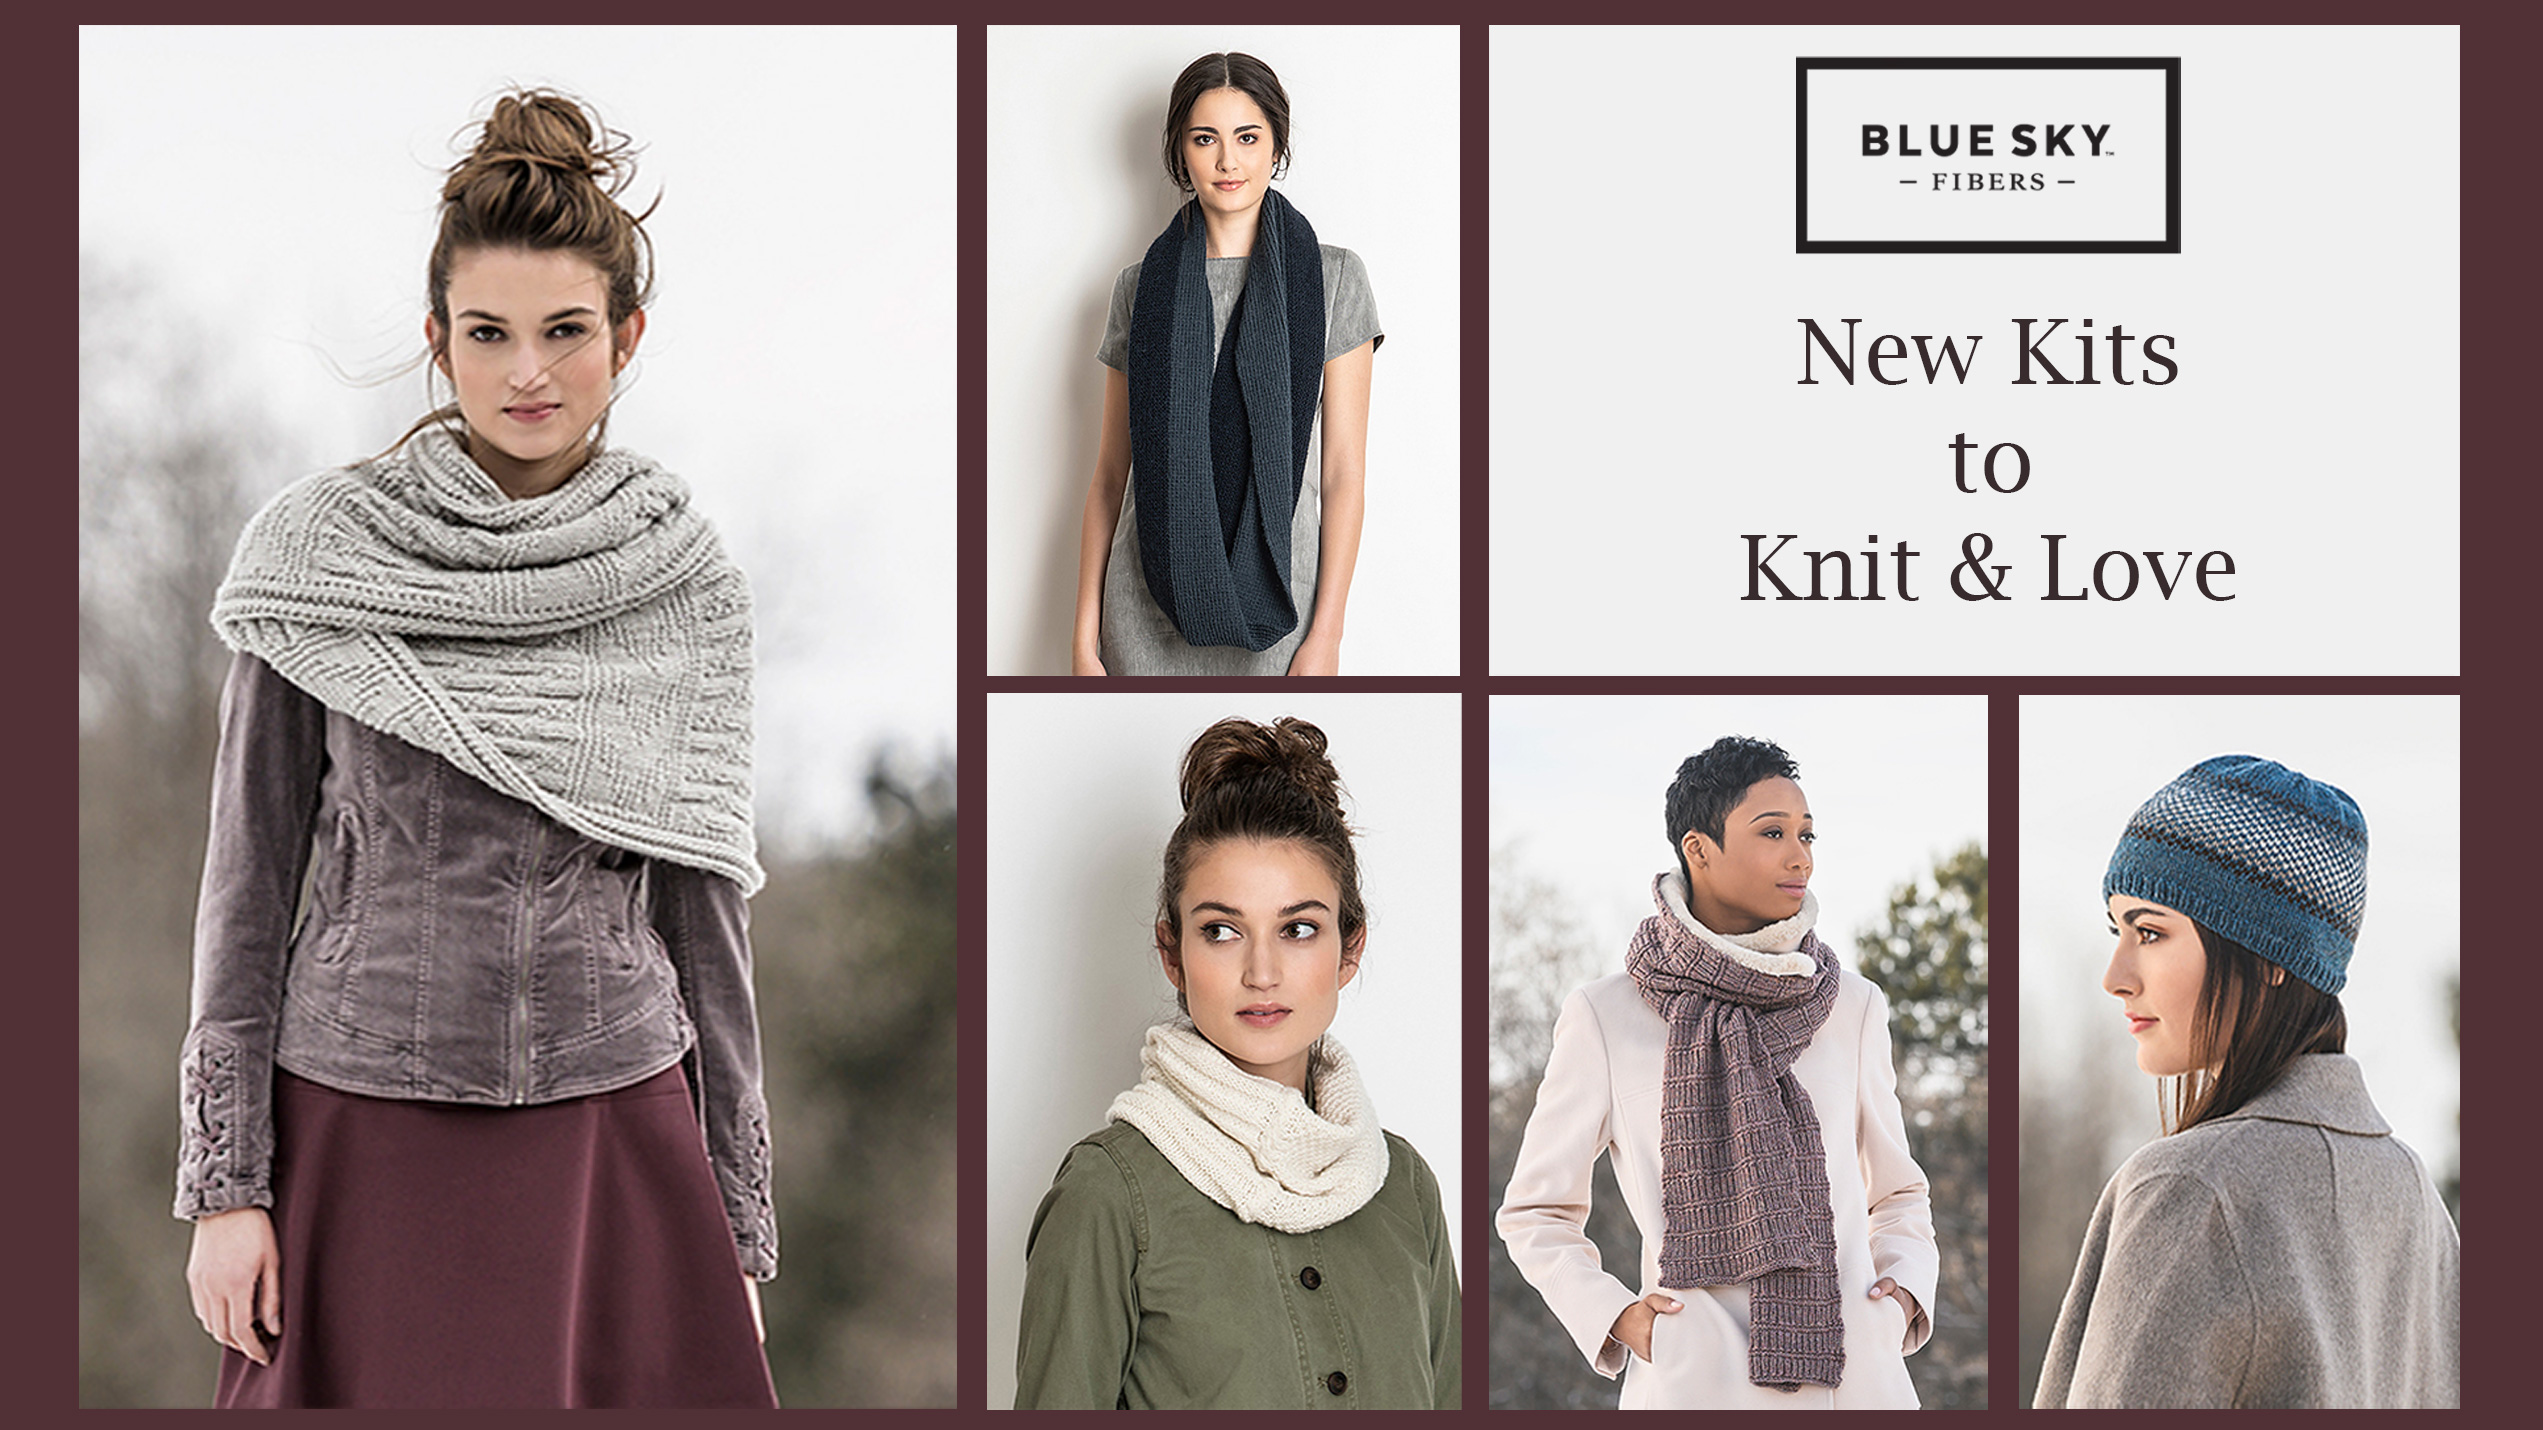 Image of New Kits to Knit & Love